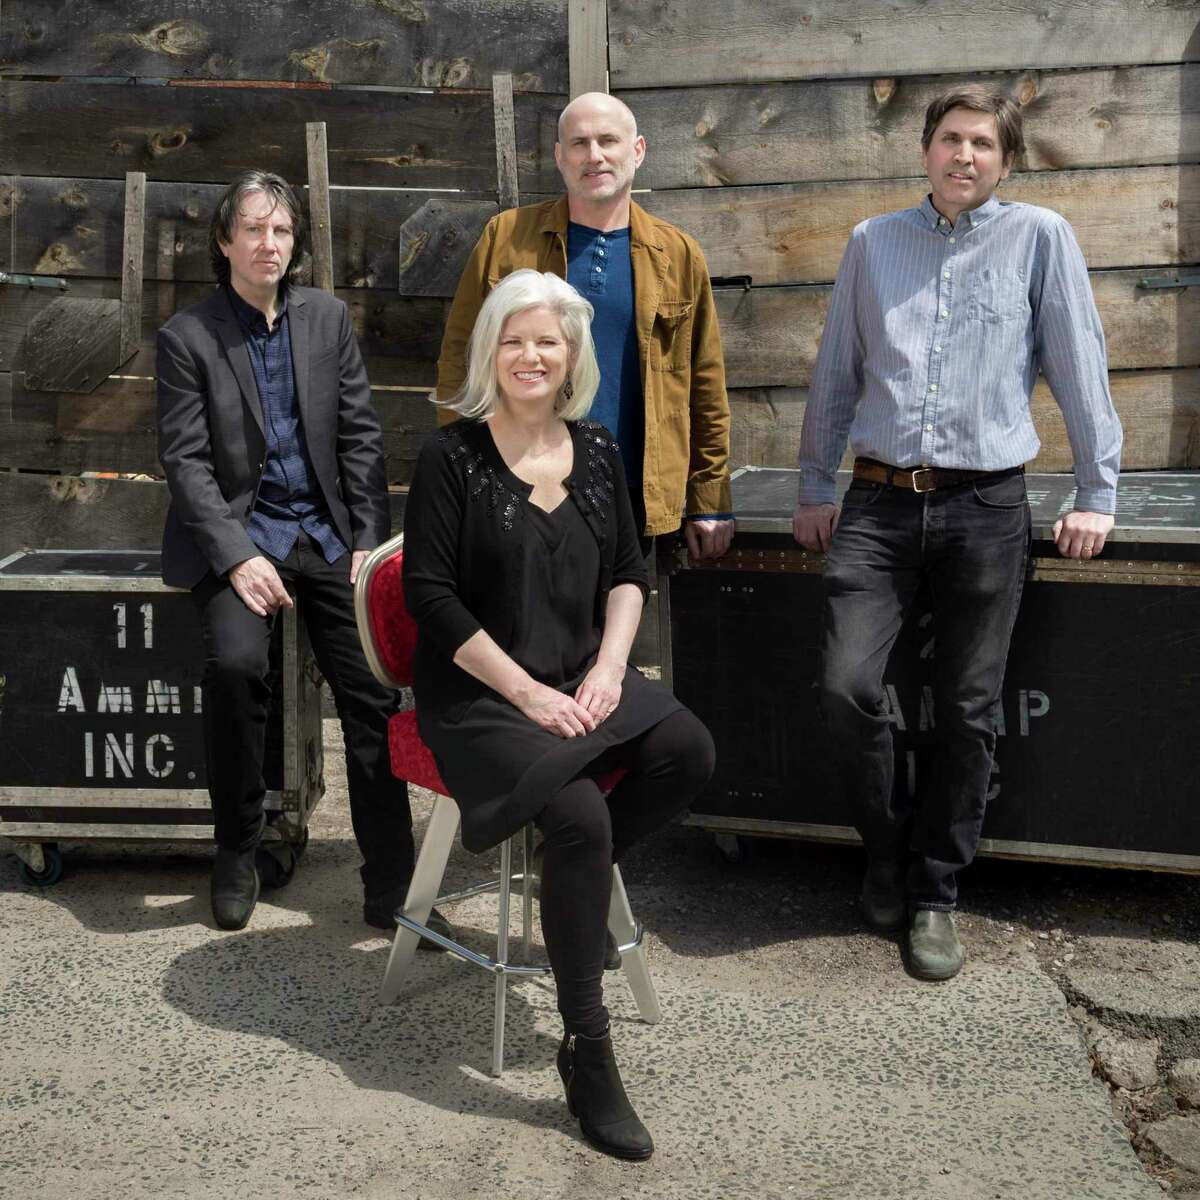 The Cowboy Junkies will perform on Nov. 9 at 8 p.m. at the Ridgefield Playhouse, 80 East Ridge Road, Ridgefield. Tickets are $55. For more information, visit ridgefieldplayhouse.org.